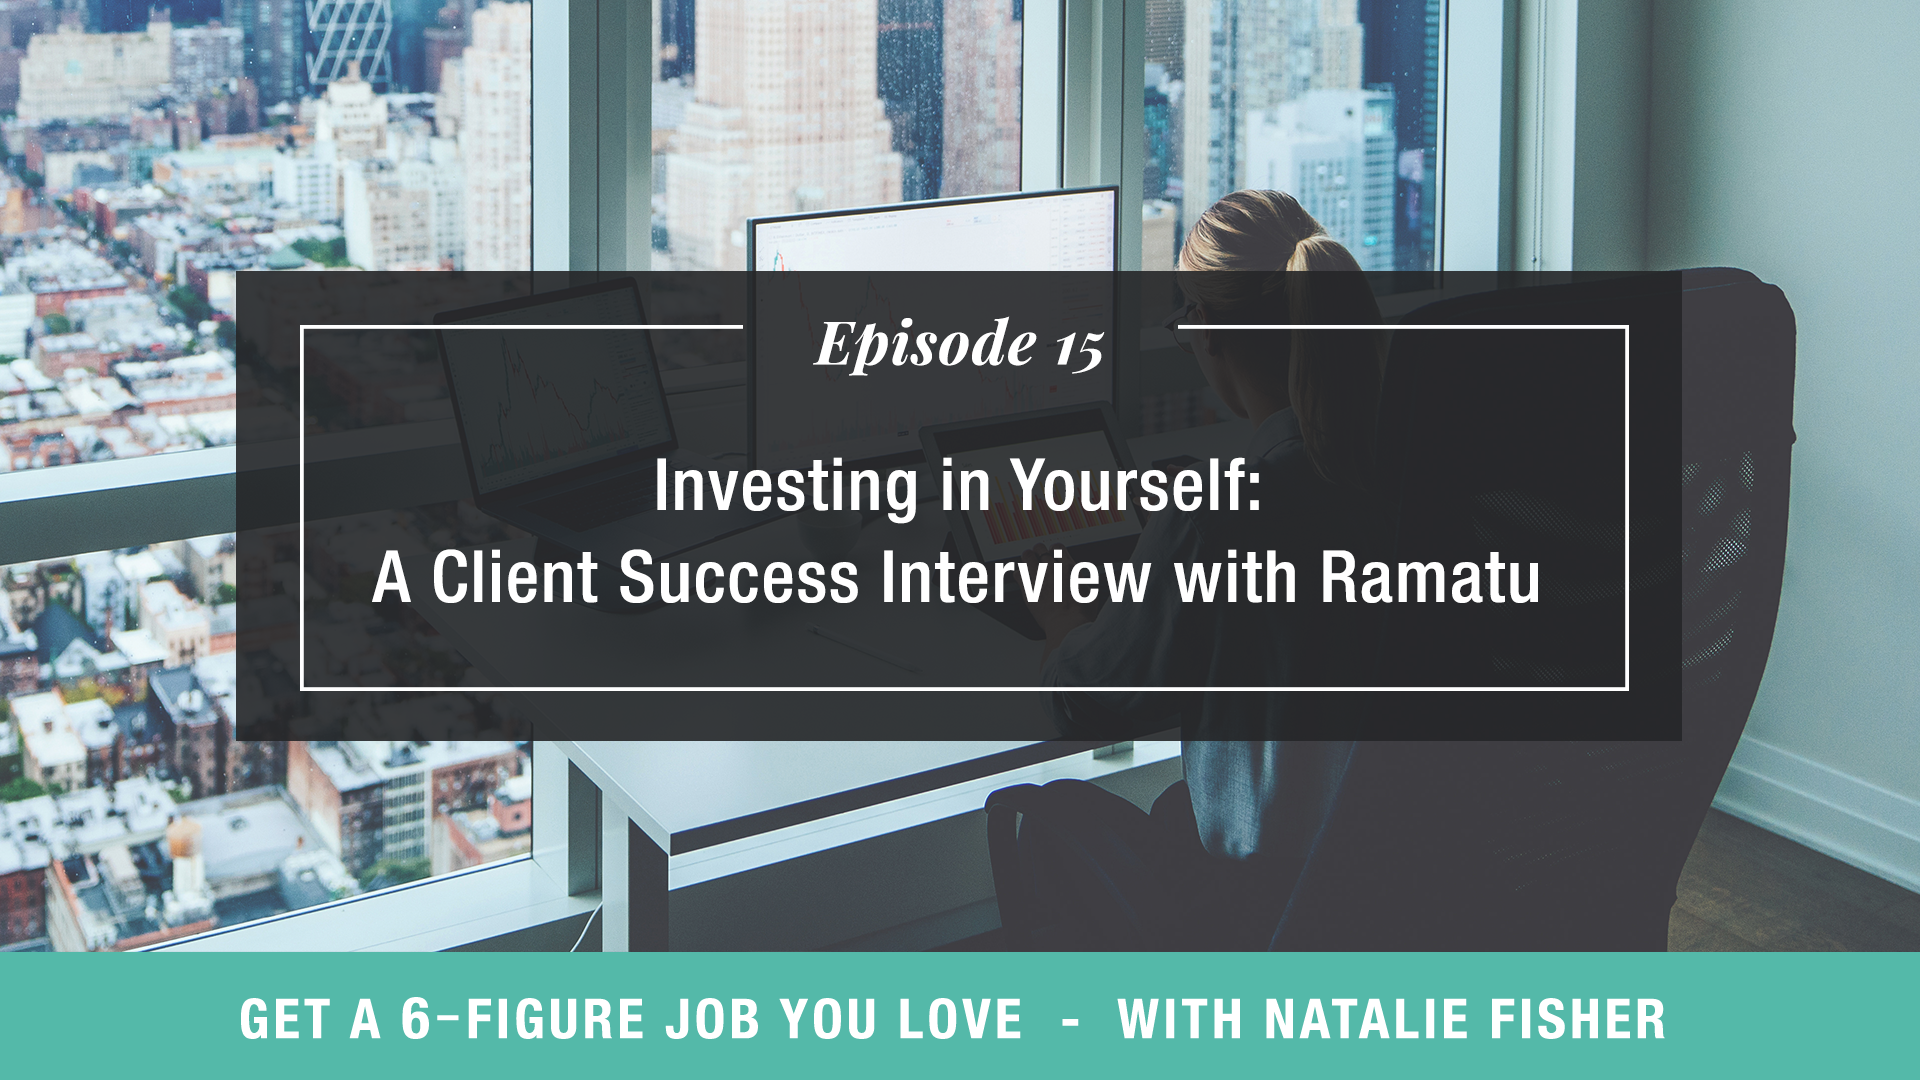 Investing in Yourself: A Client Success Interview with Ramatu